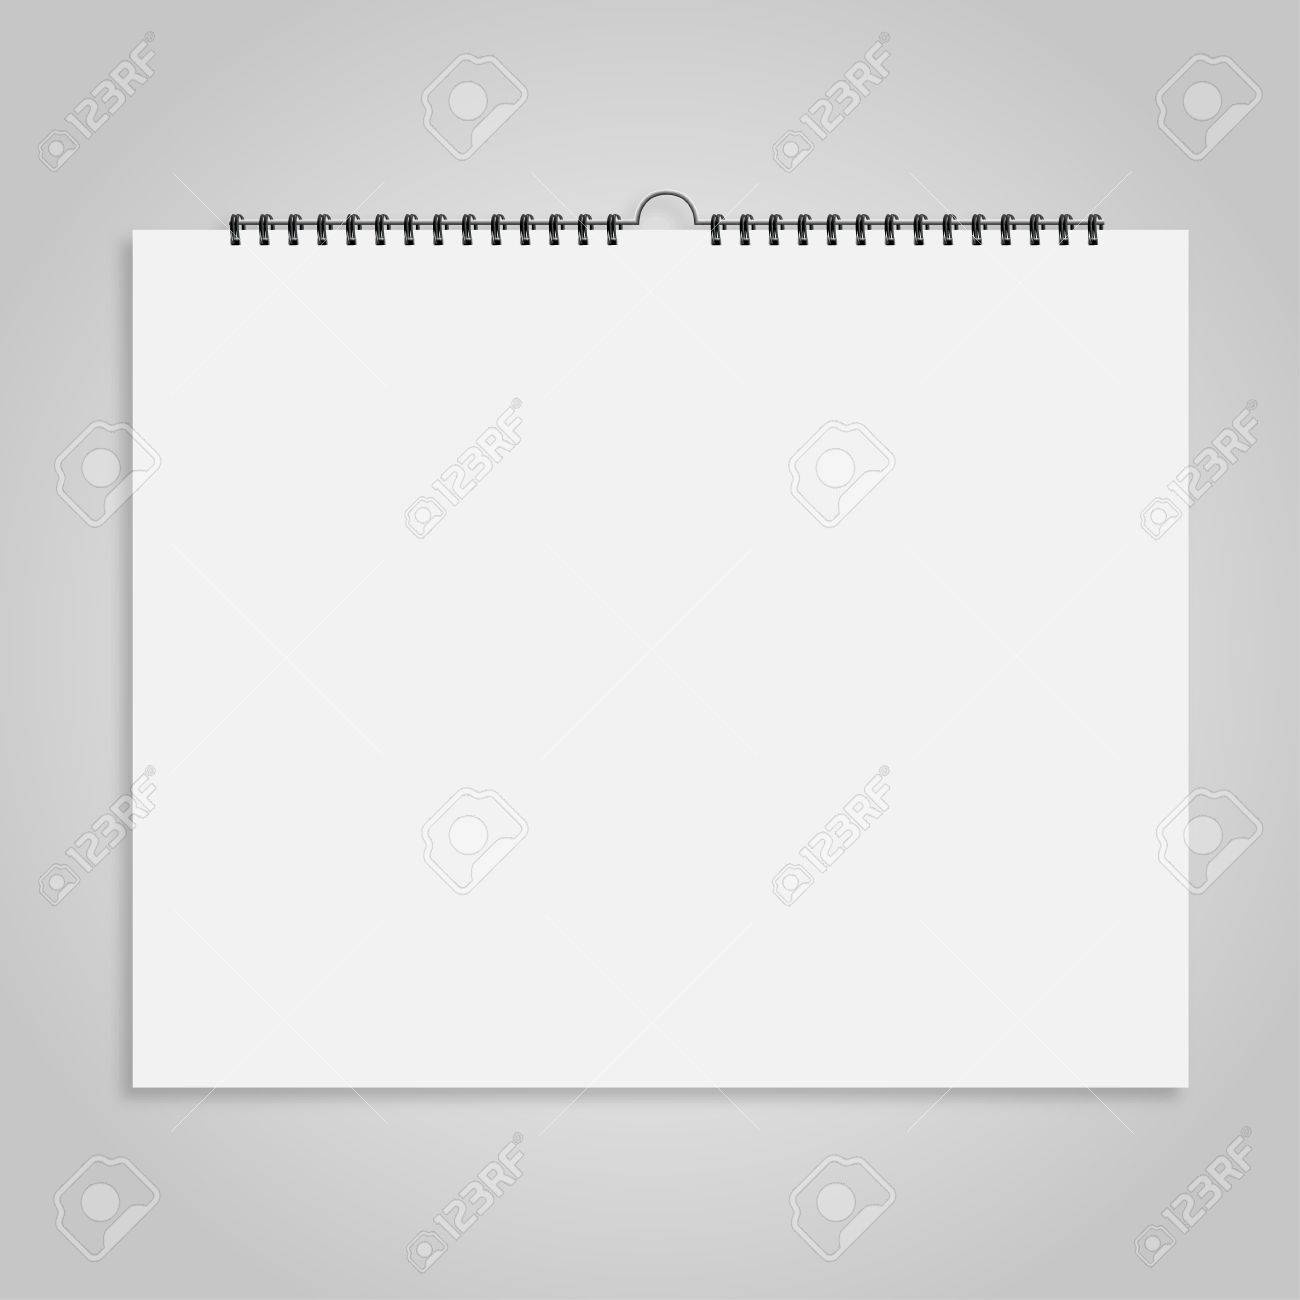 Calendar sheet of paper on a gray background - 50134322